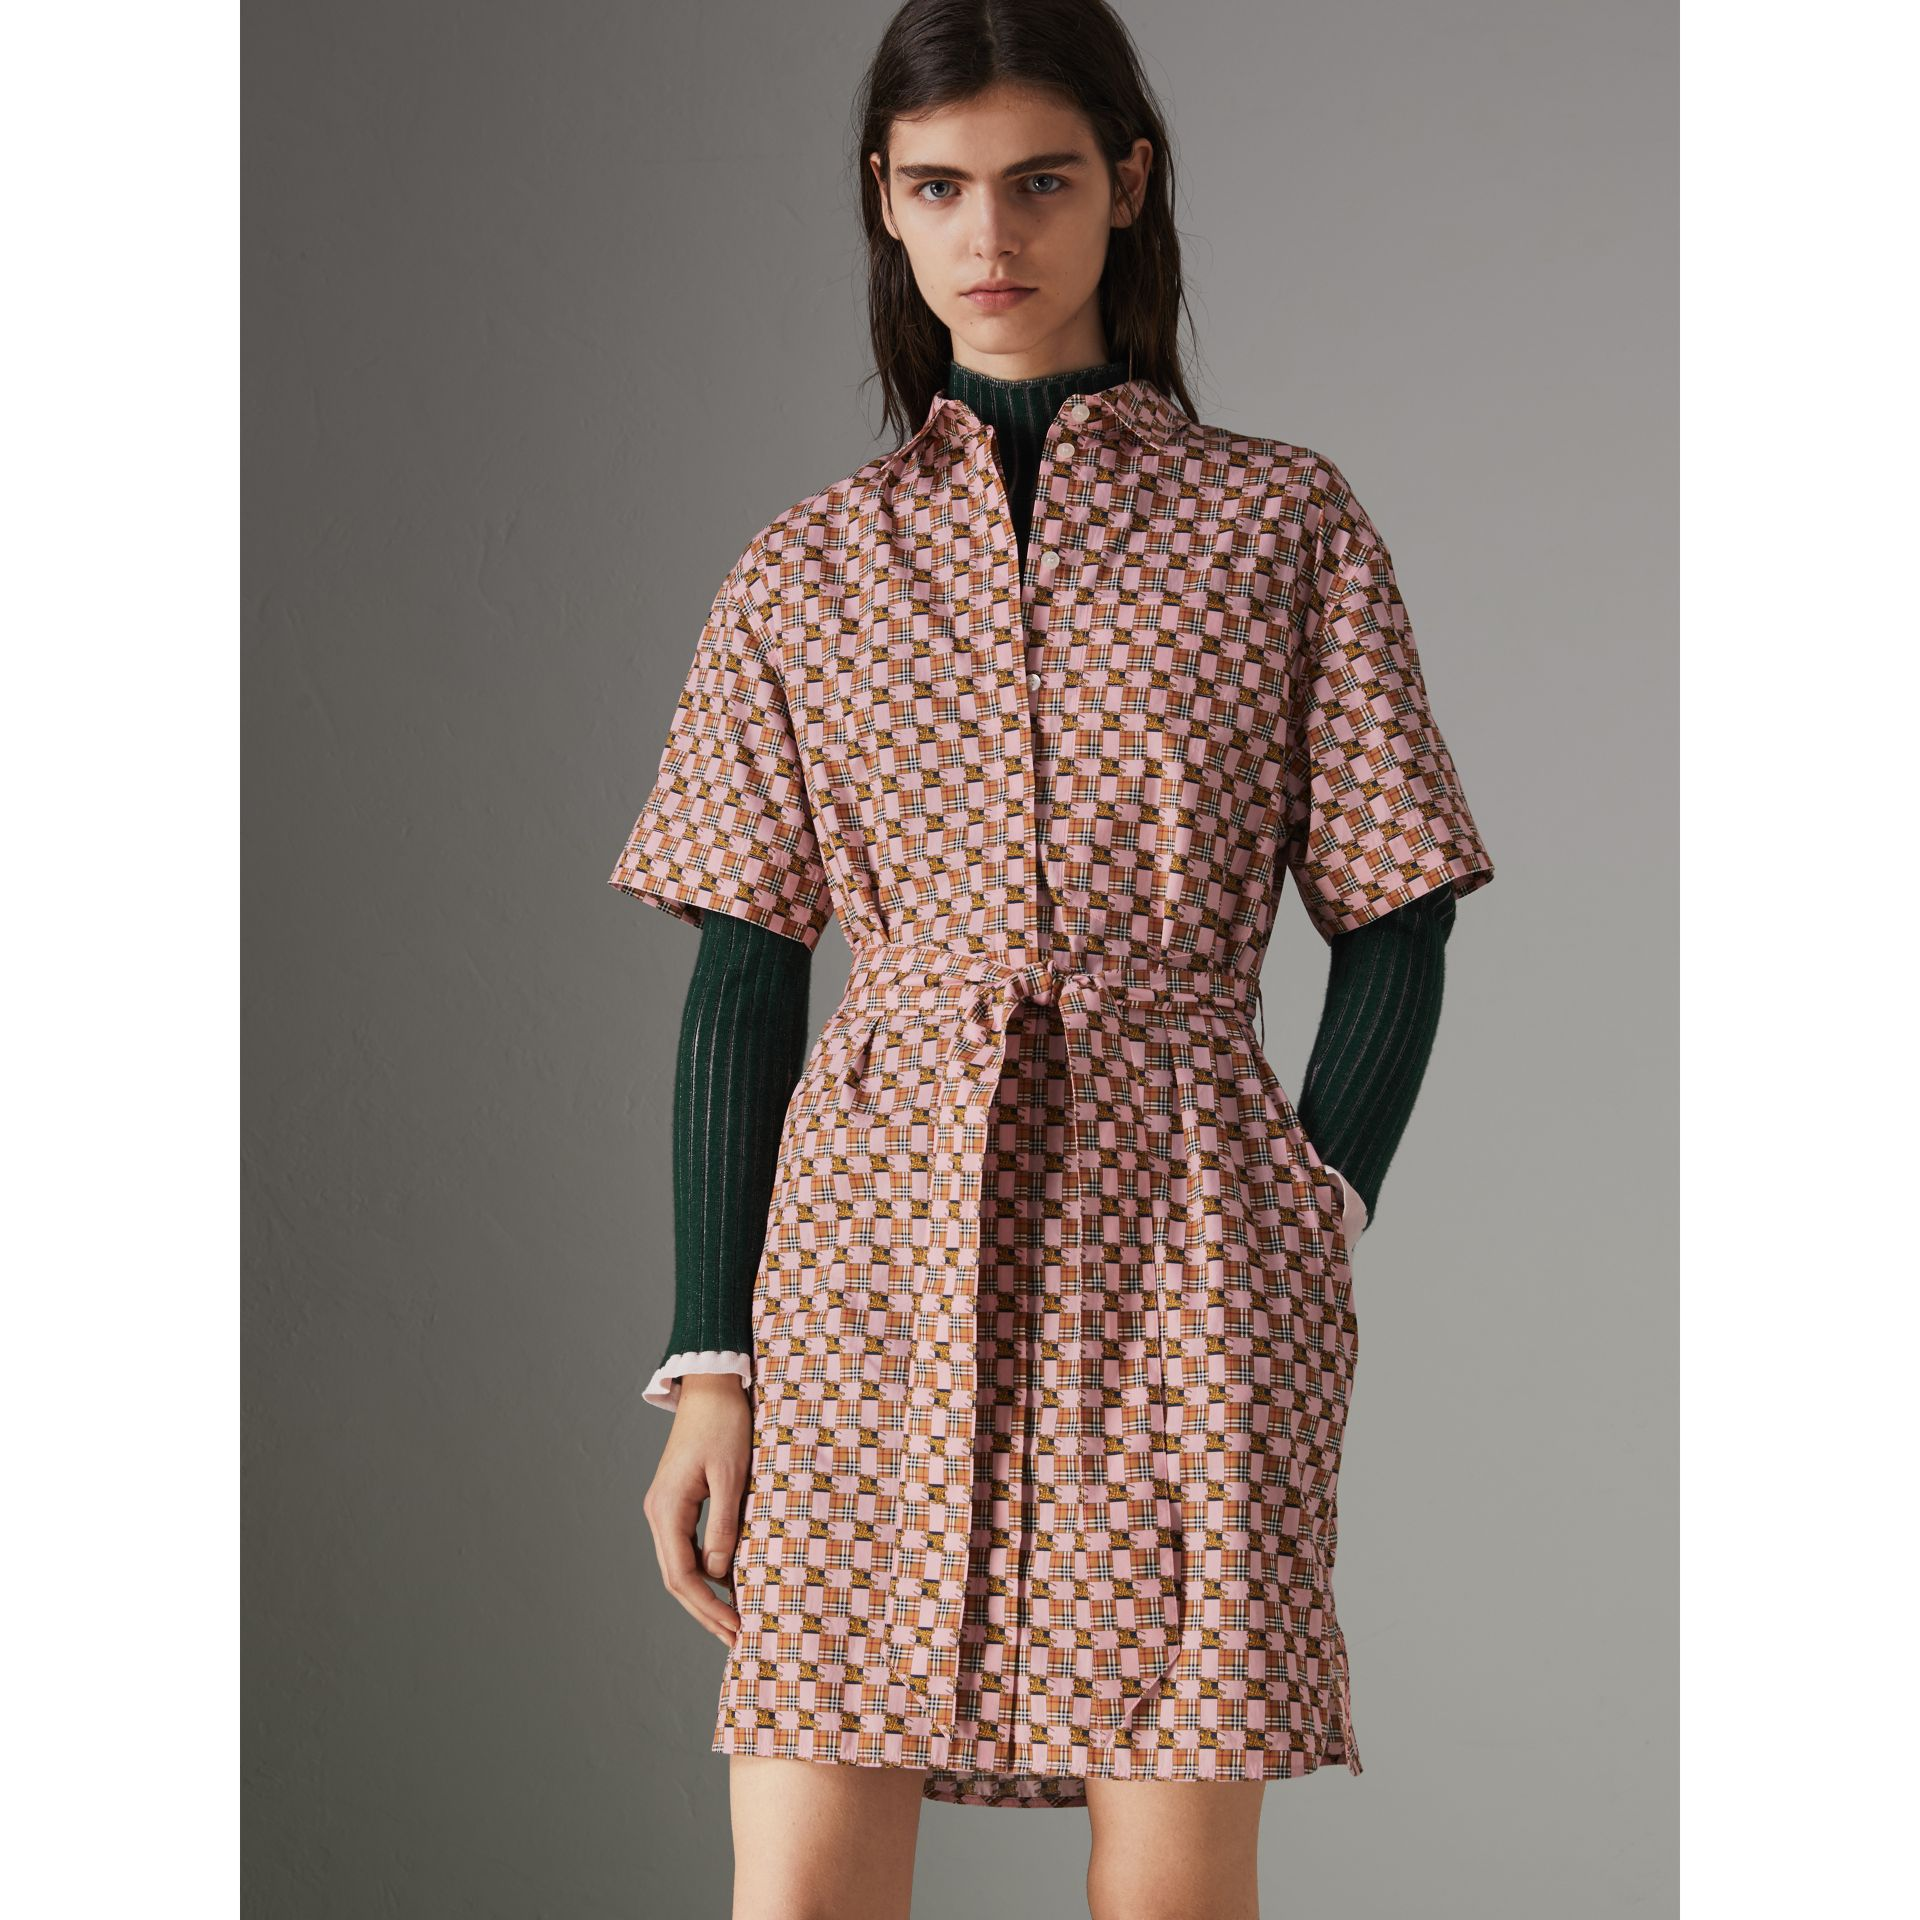 Tiled Archive Print Cotton Shirt Dress in Pink - Women | Burberry Singapore - gallery image 4